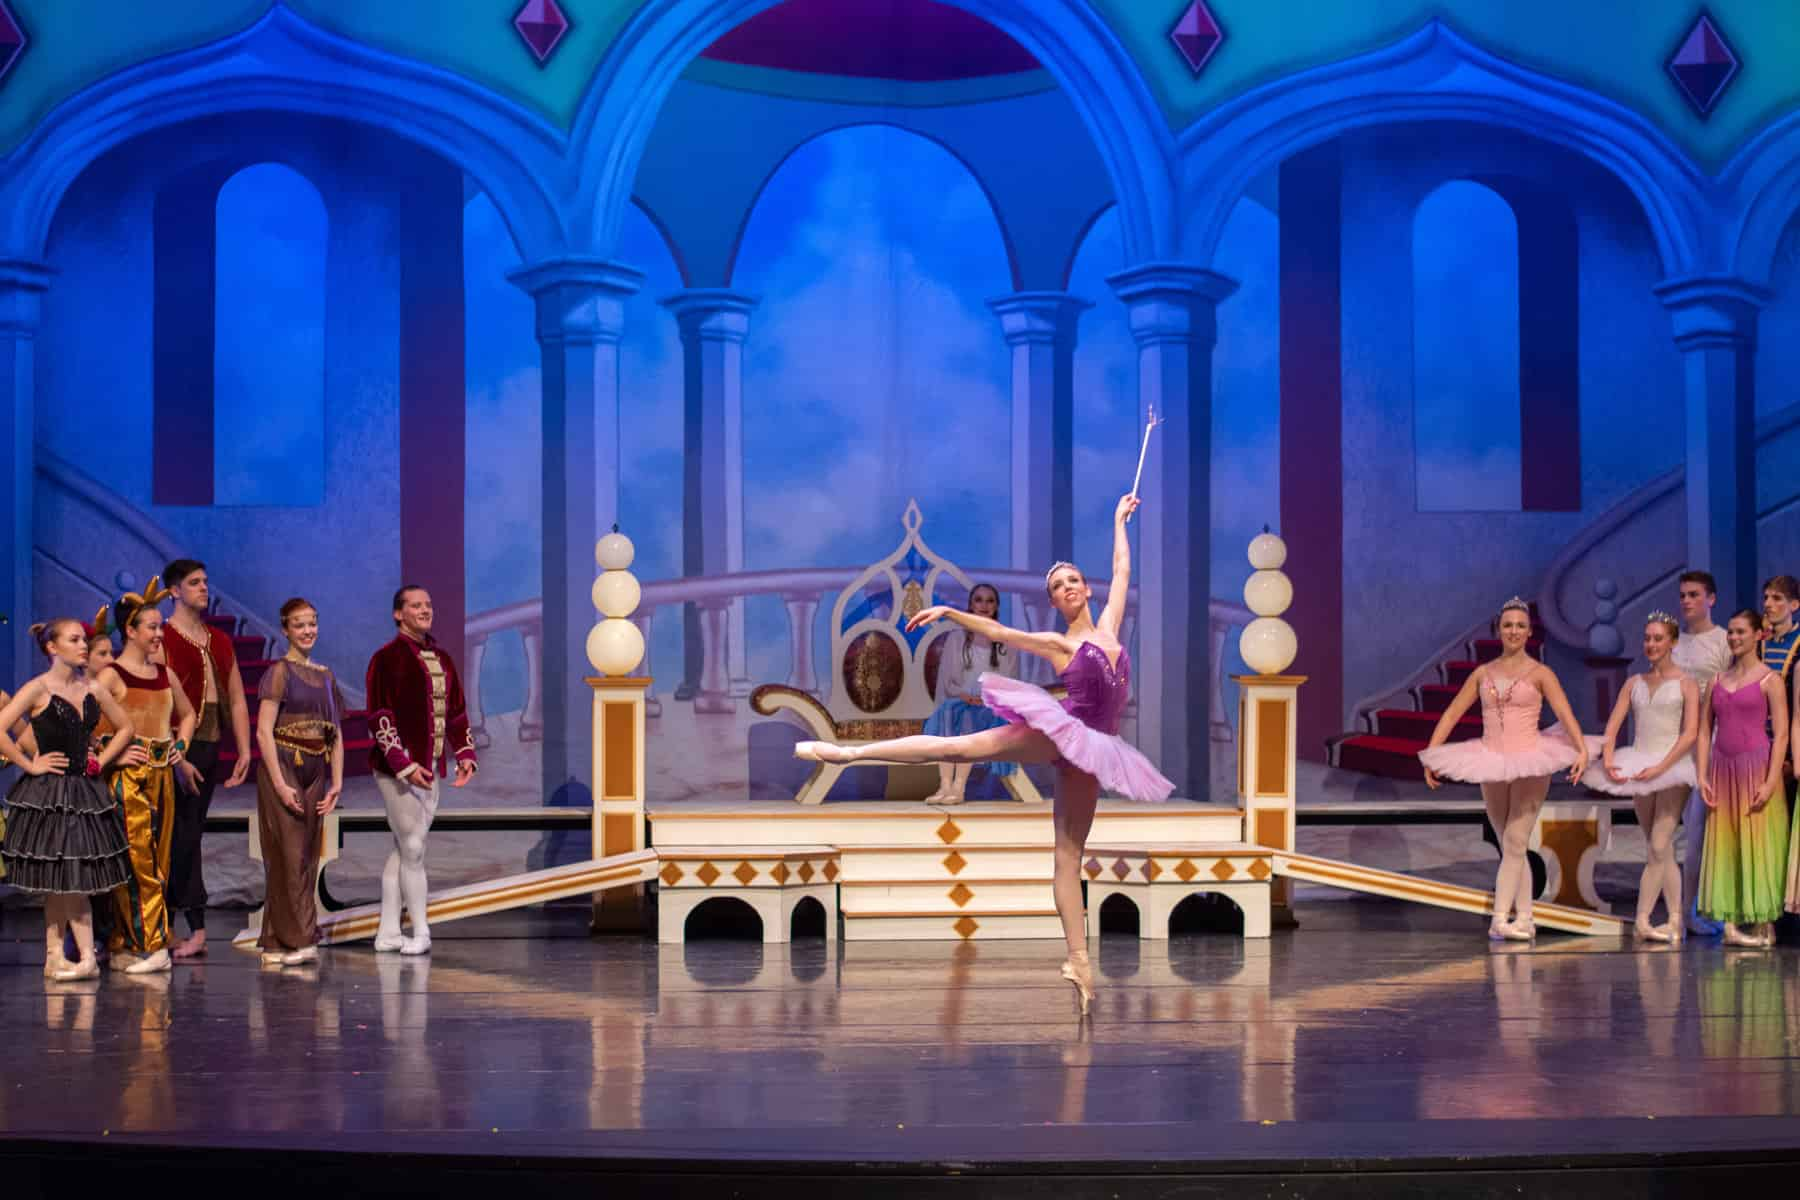 Photo: The Sugar Plum Fairy dancing in Ballet Chelsea's performance of The Nutcracker